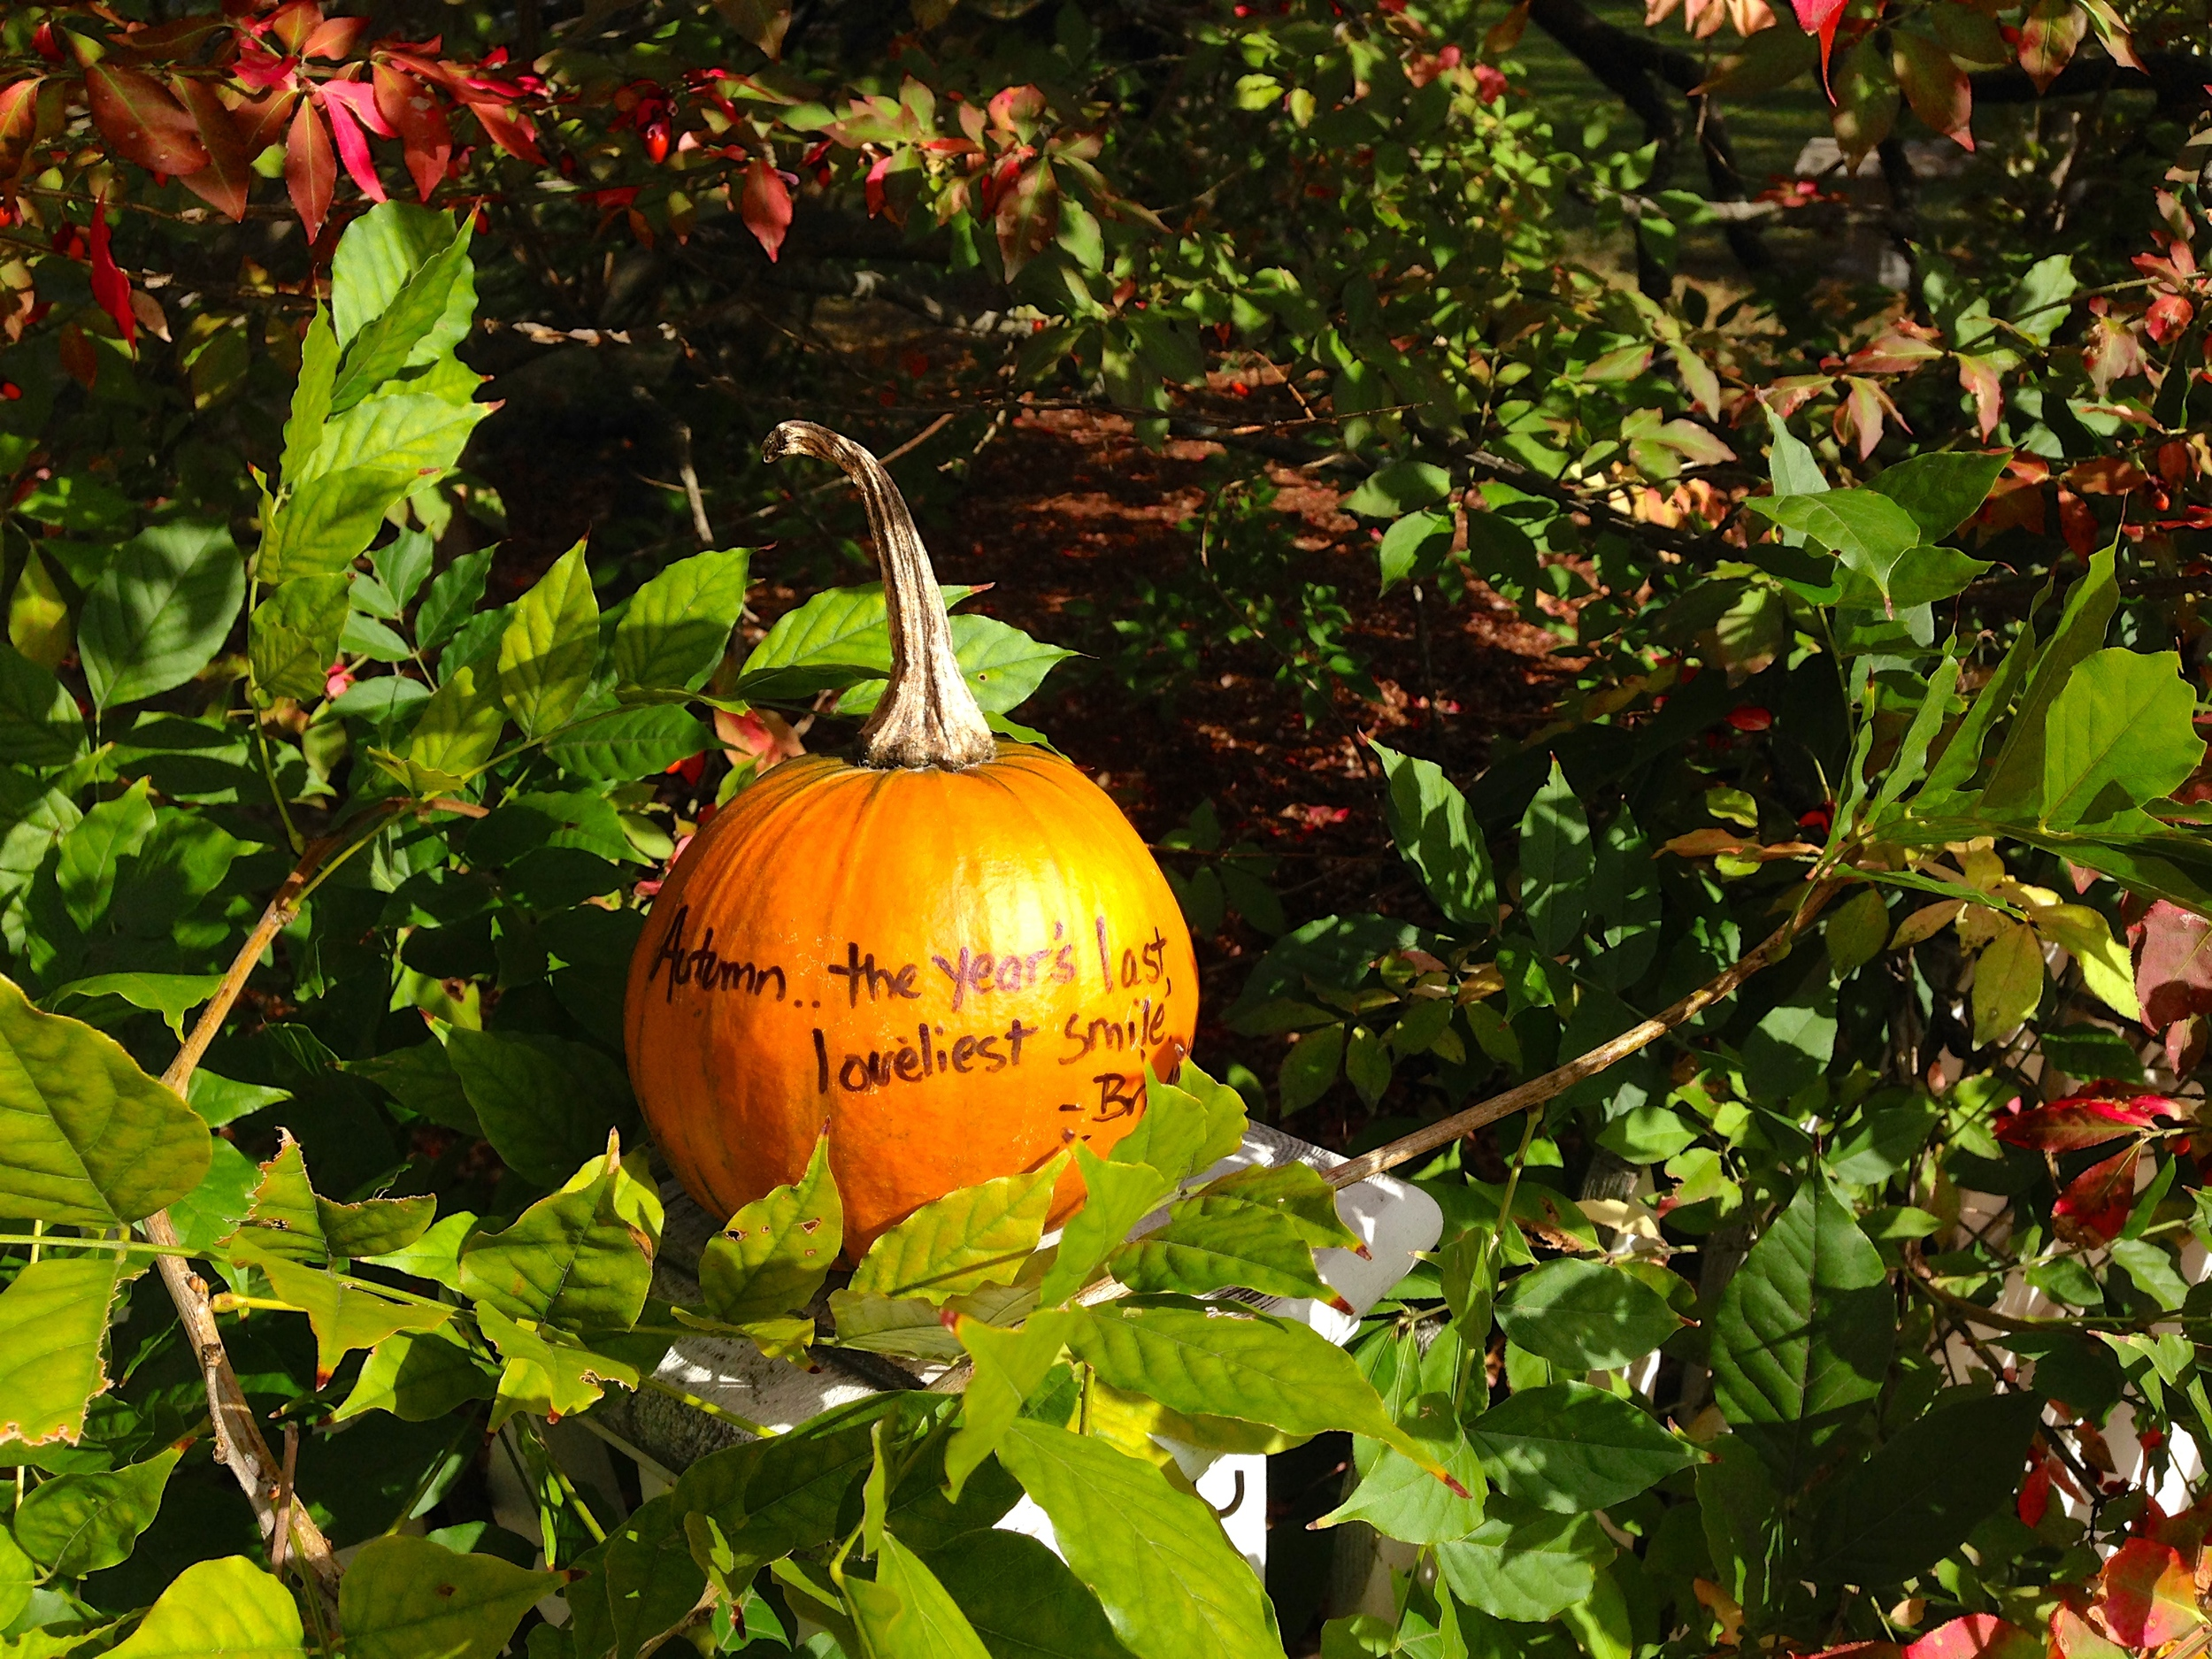 {A house in town with quotes written on the pumpkins lining their yard}